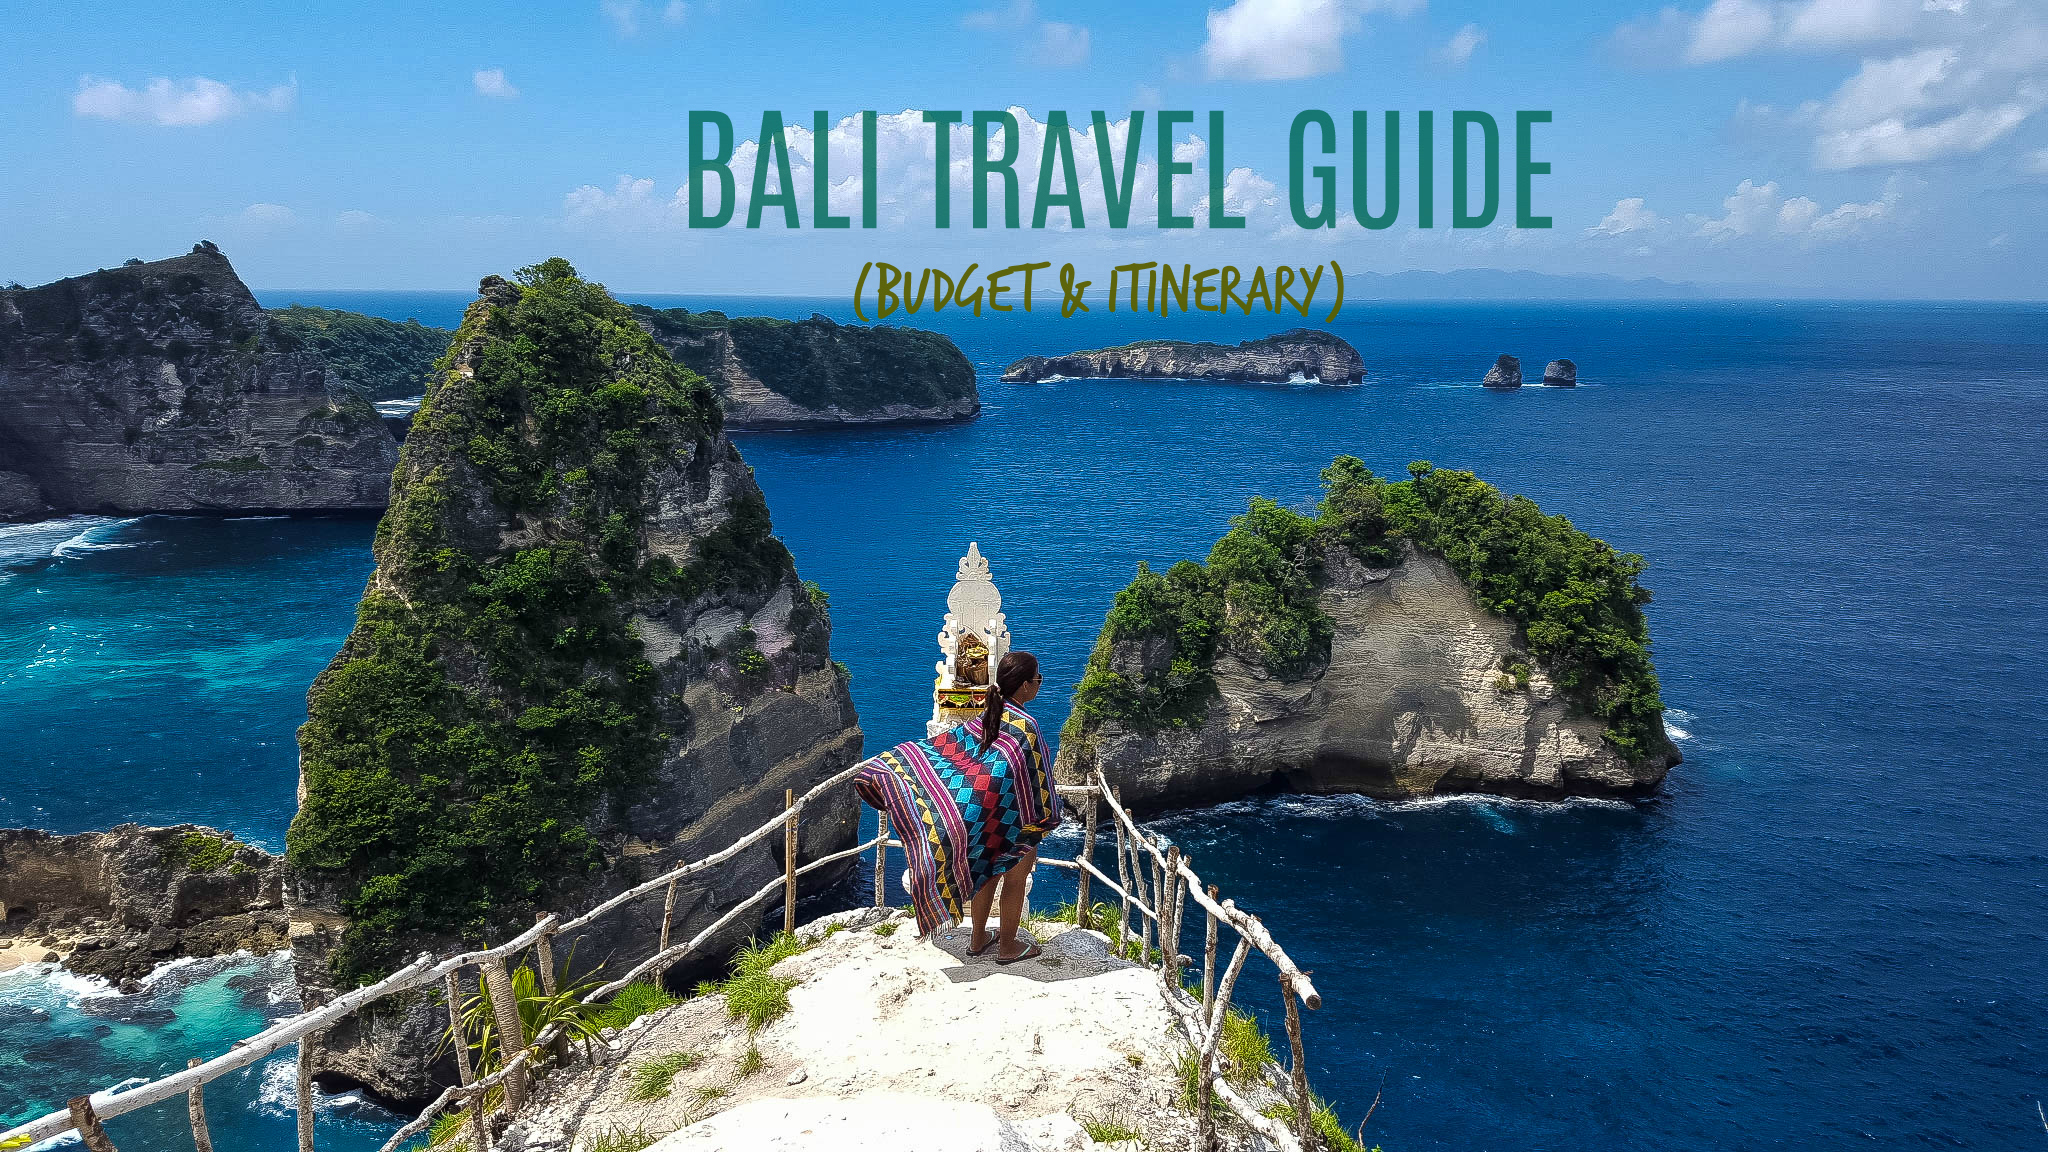 Bali Travel Guide 2019 (Budget + Itinerary)